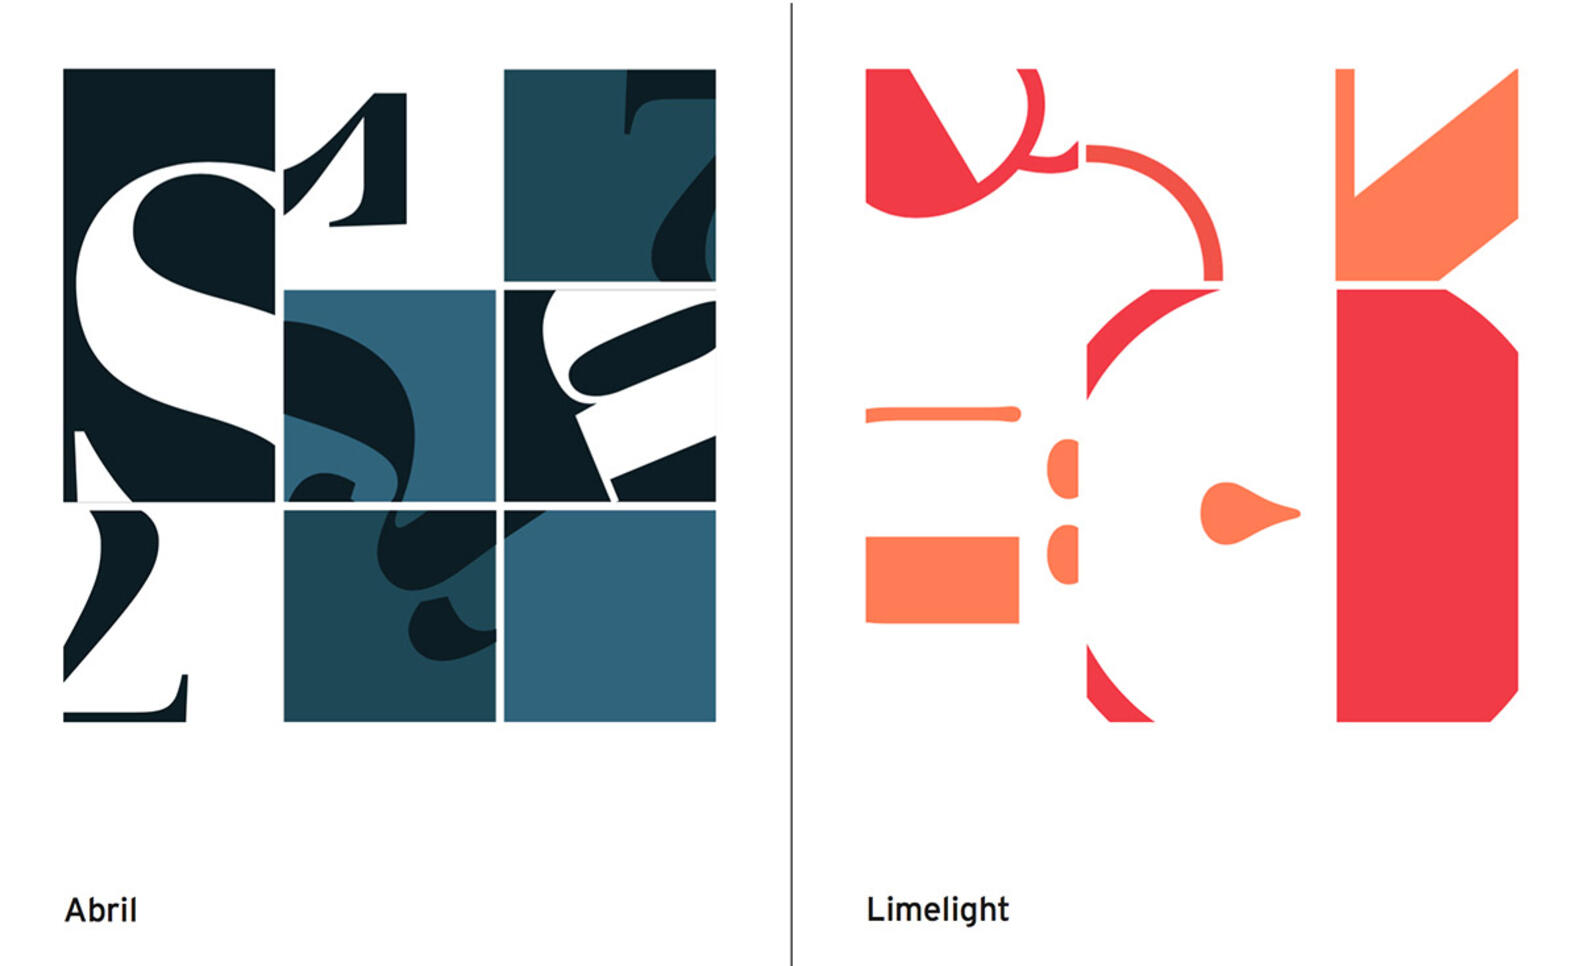 Poster of 9 paneled grids depicting different fonts and color schemes. ; Angela Boline